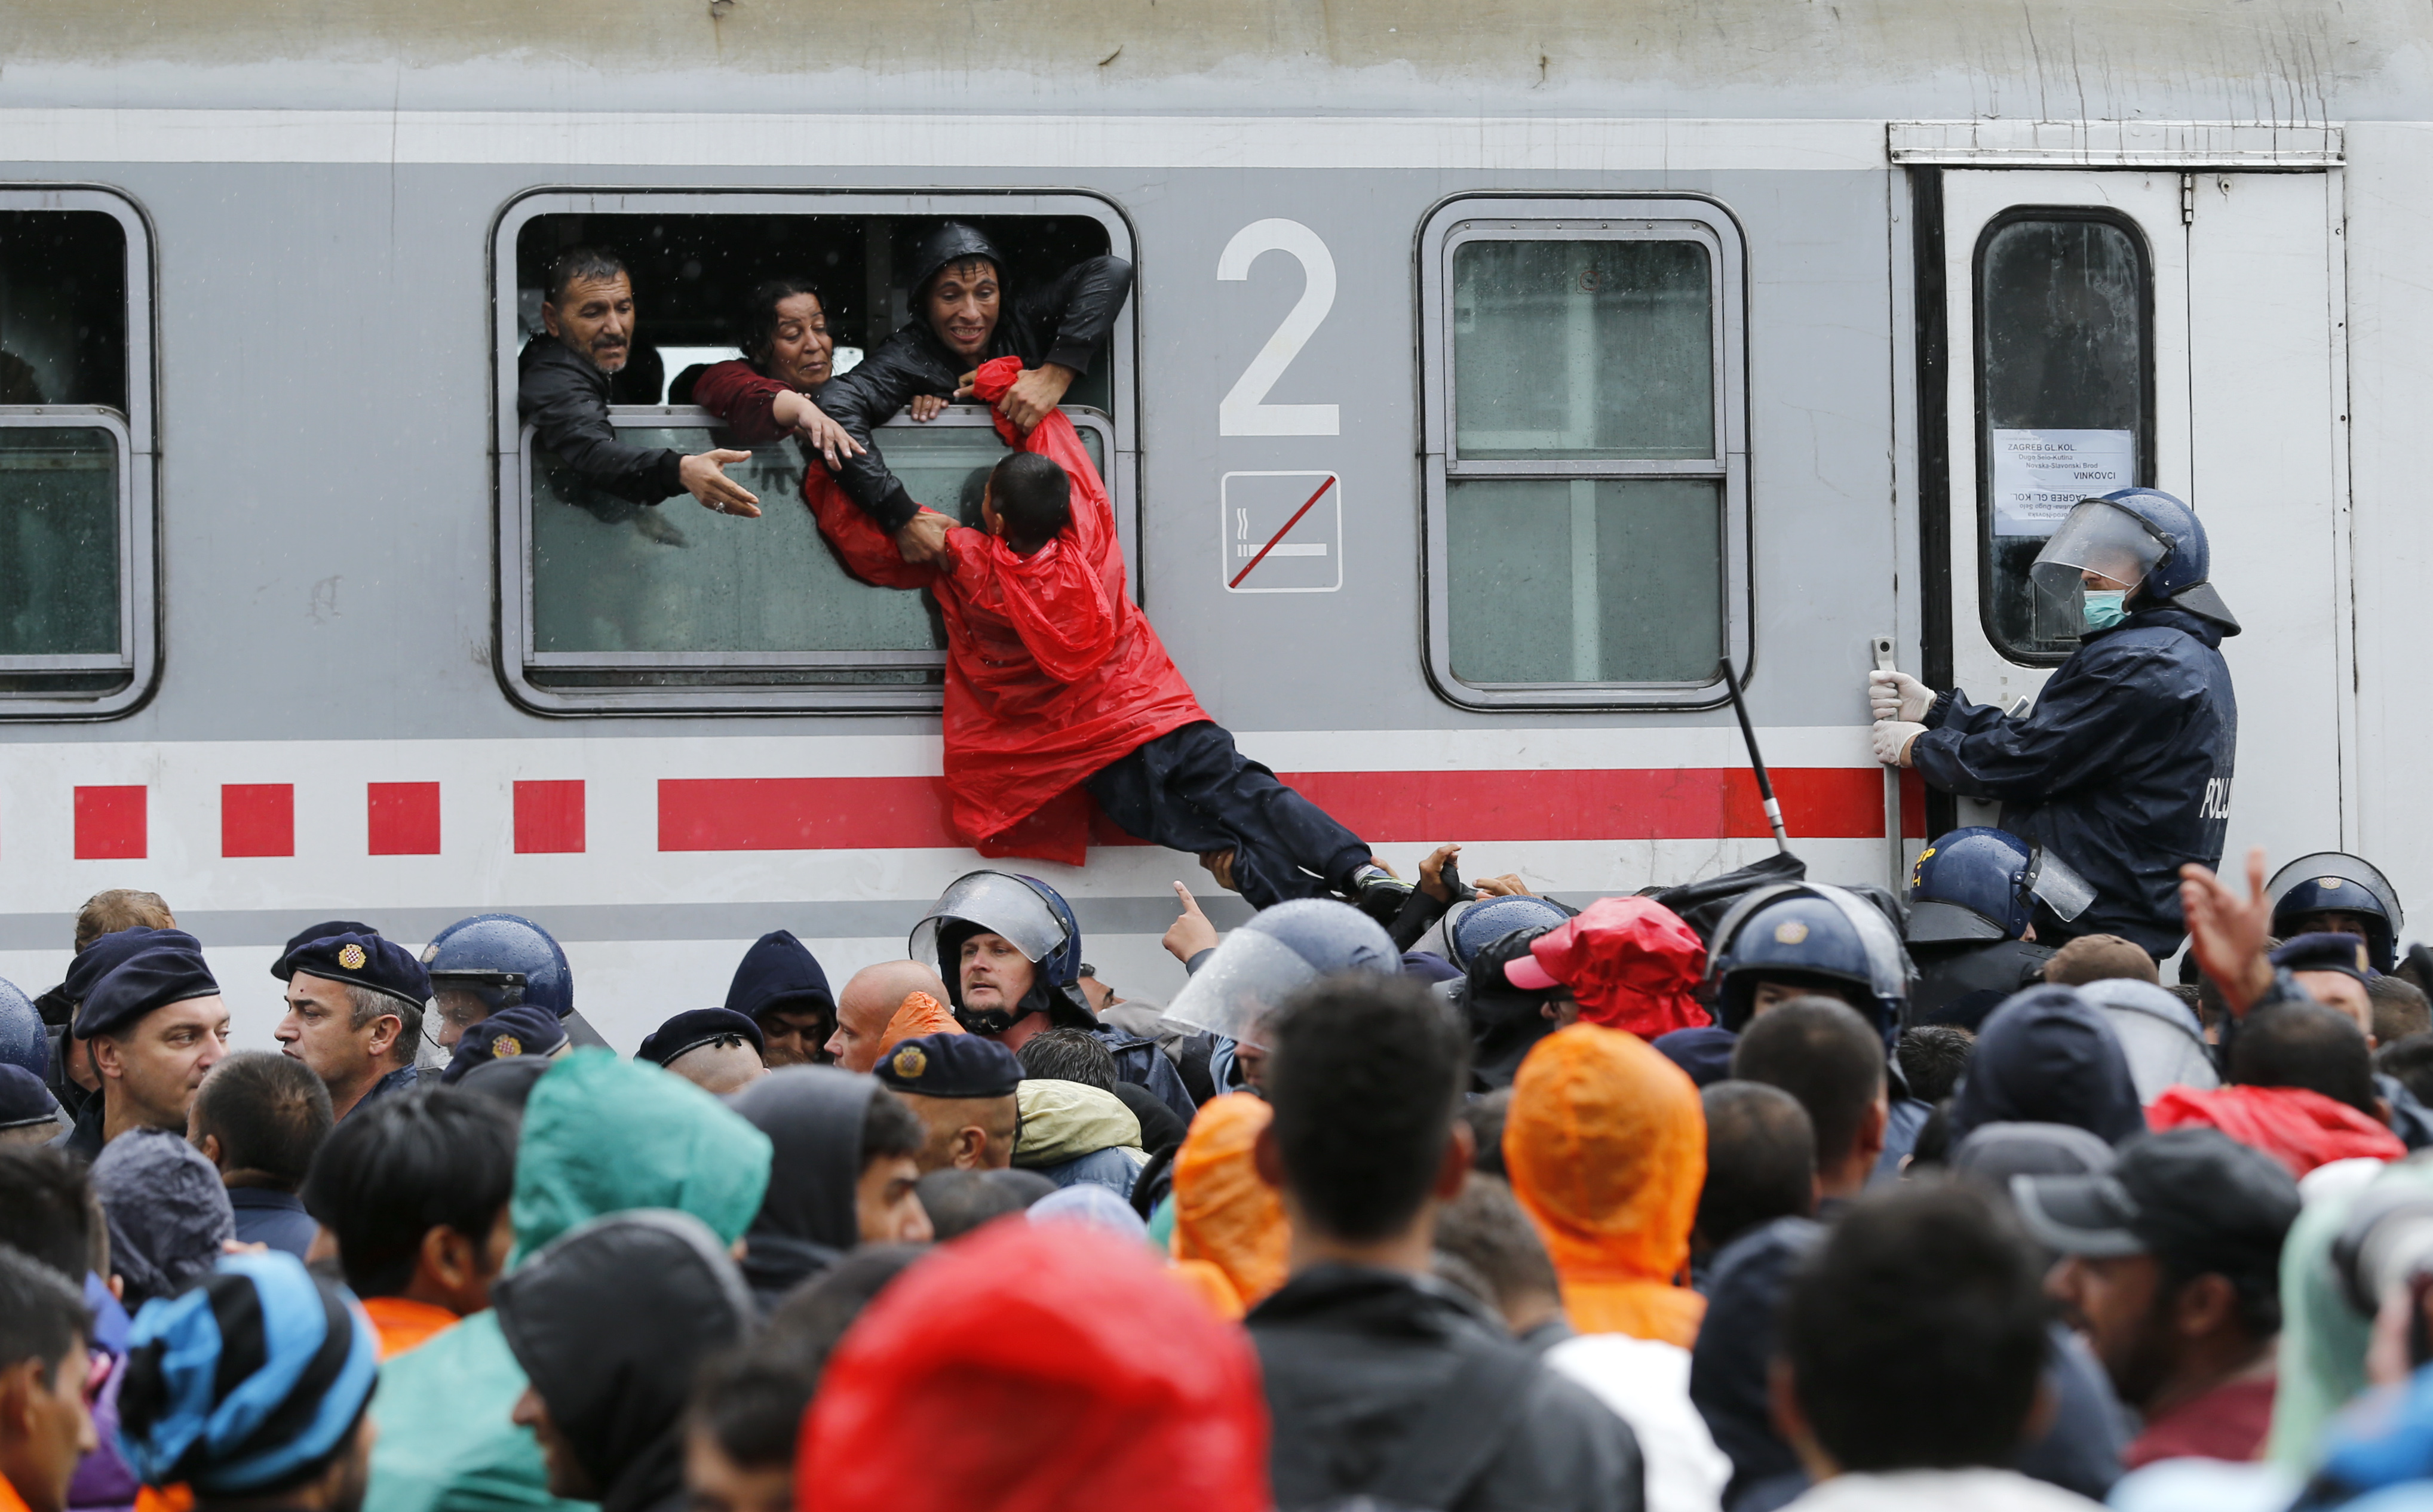 Migrants pull a boy through a train window at the station in Tovarnik, Croatia, Sept. 20, 2015.